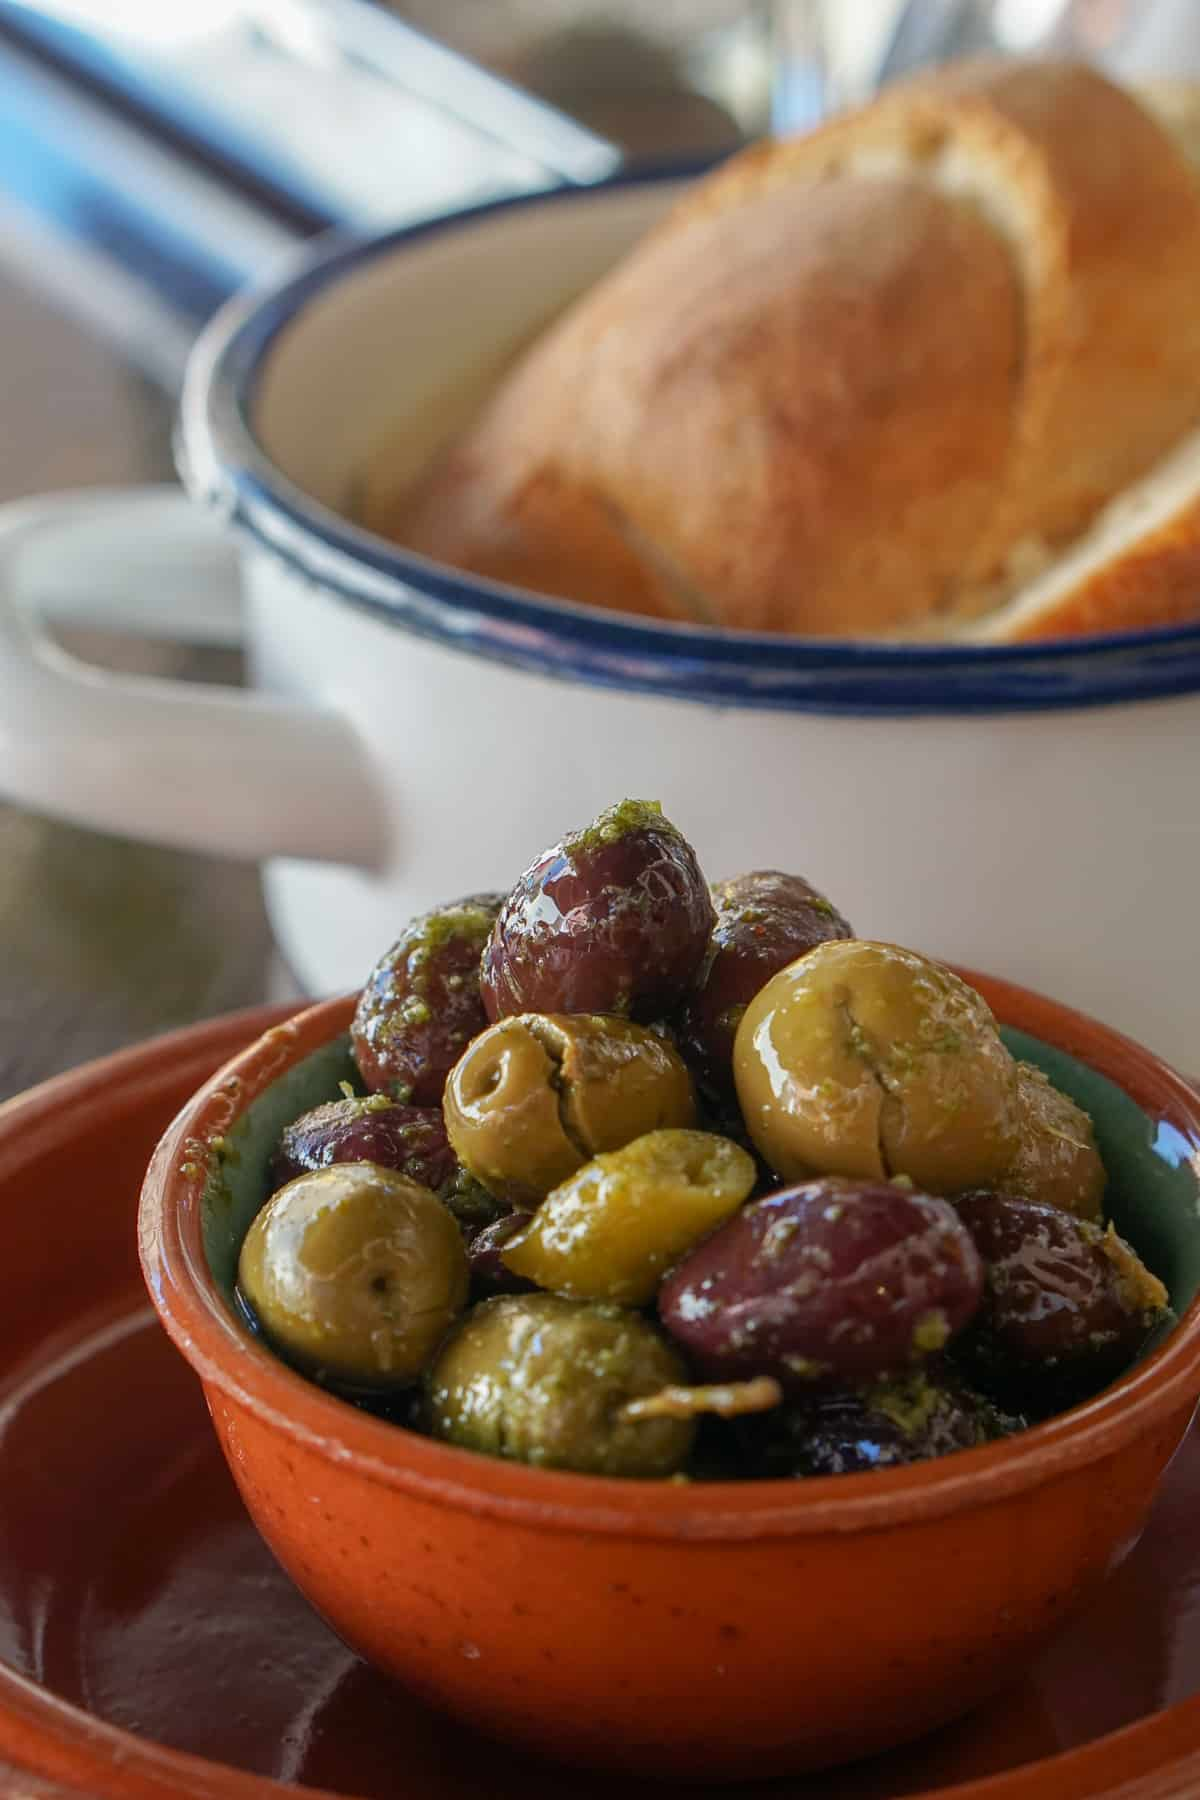 Mallorcan olives in a clay bowl.